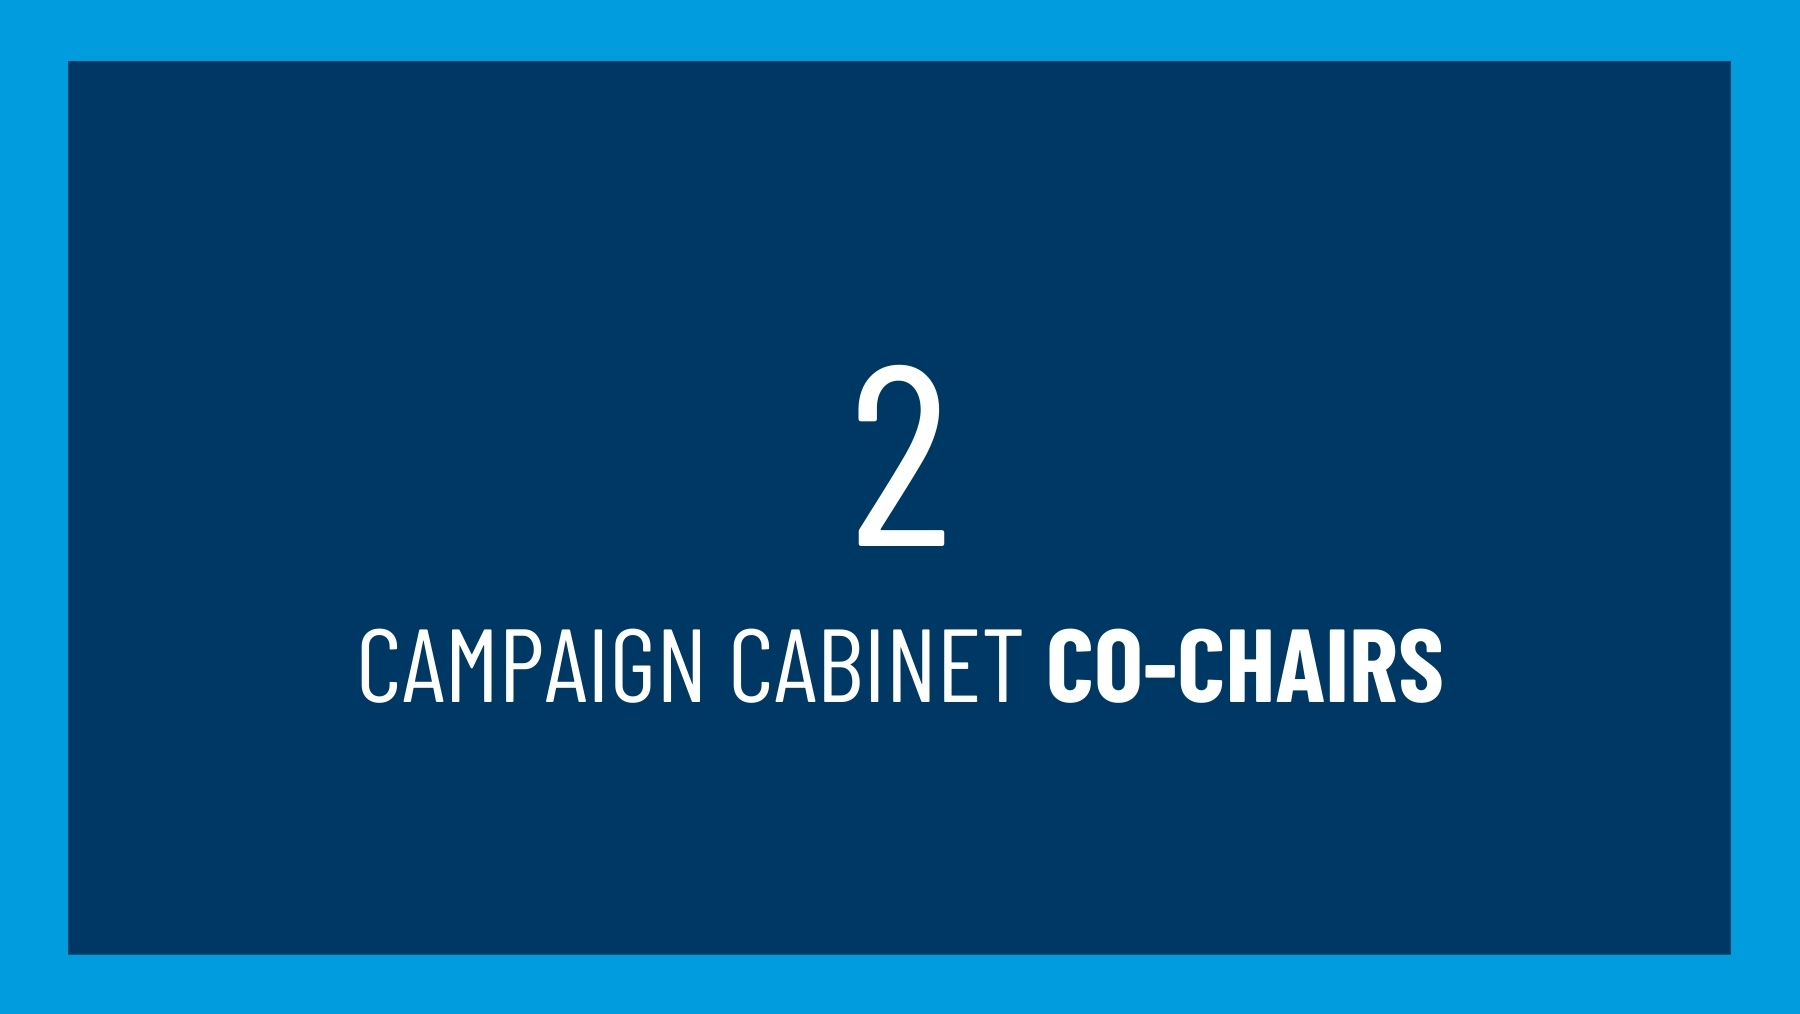 2 campaign cabinet co-chairs